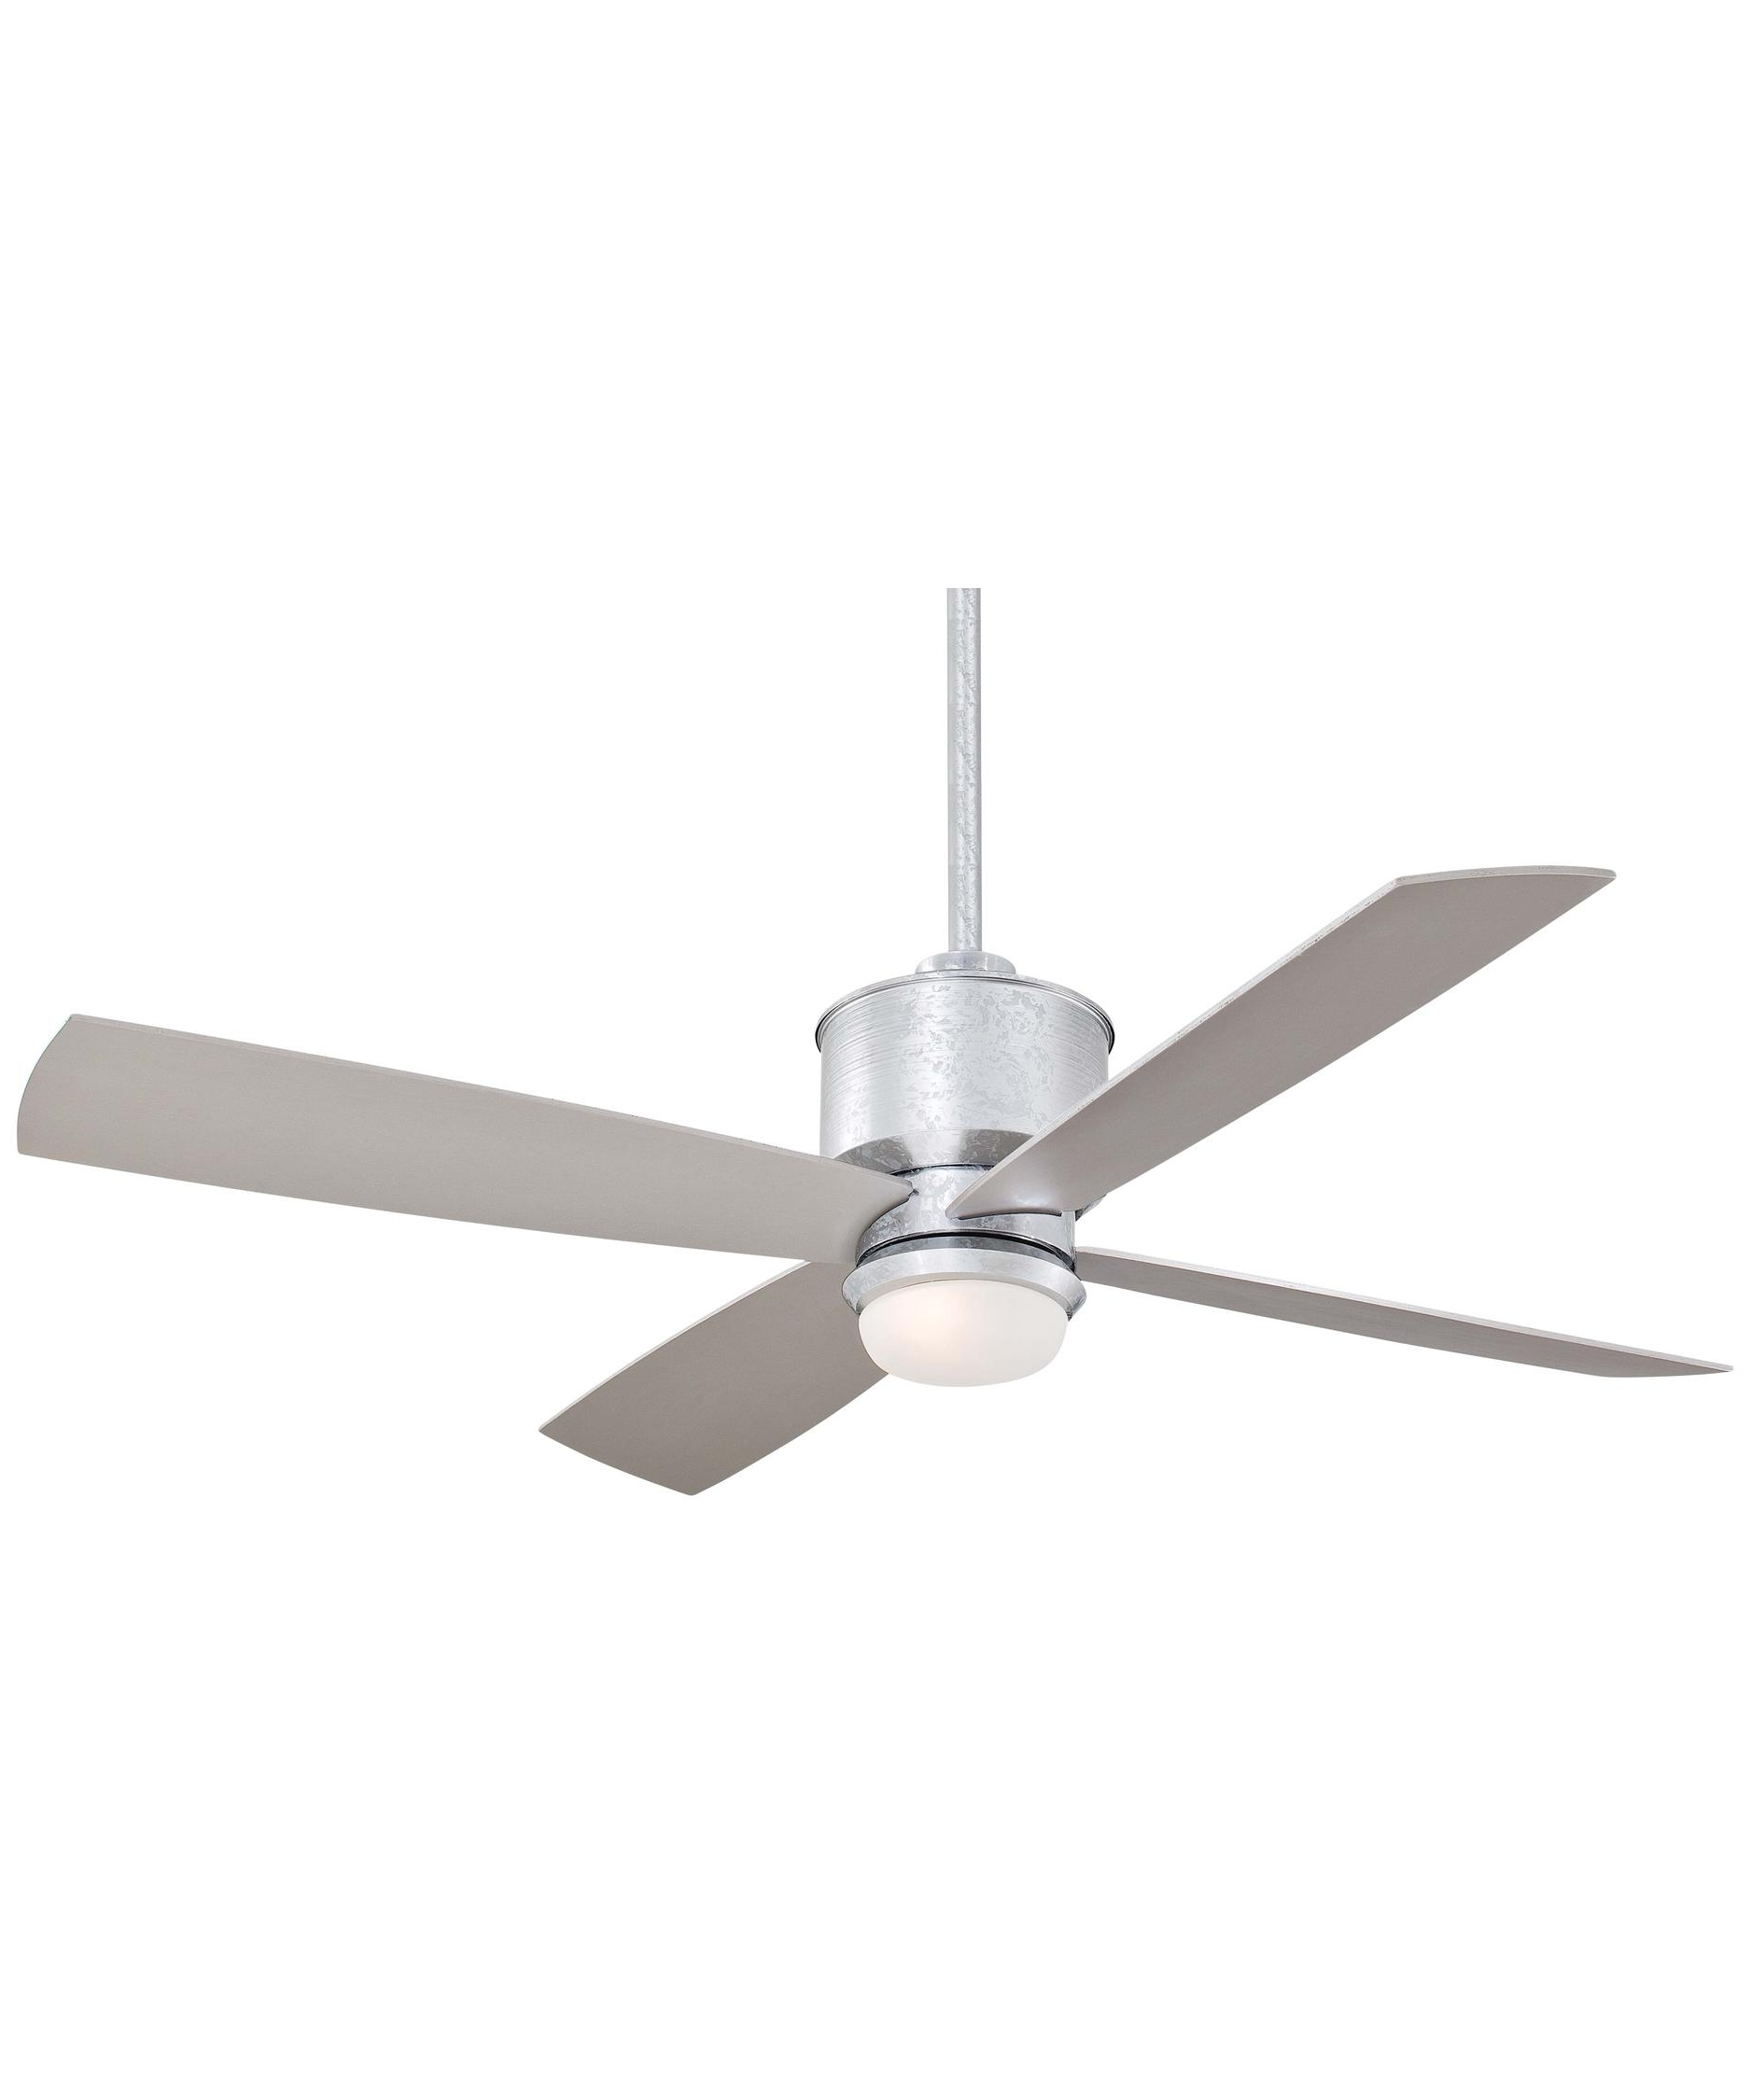 2019 Minka Aire F734 Strata 52 Inch 4 Blade Ceiling Fan (Gallery 3 of 20)